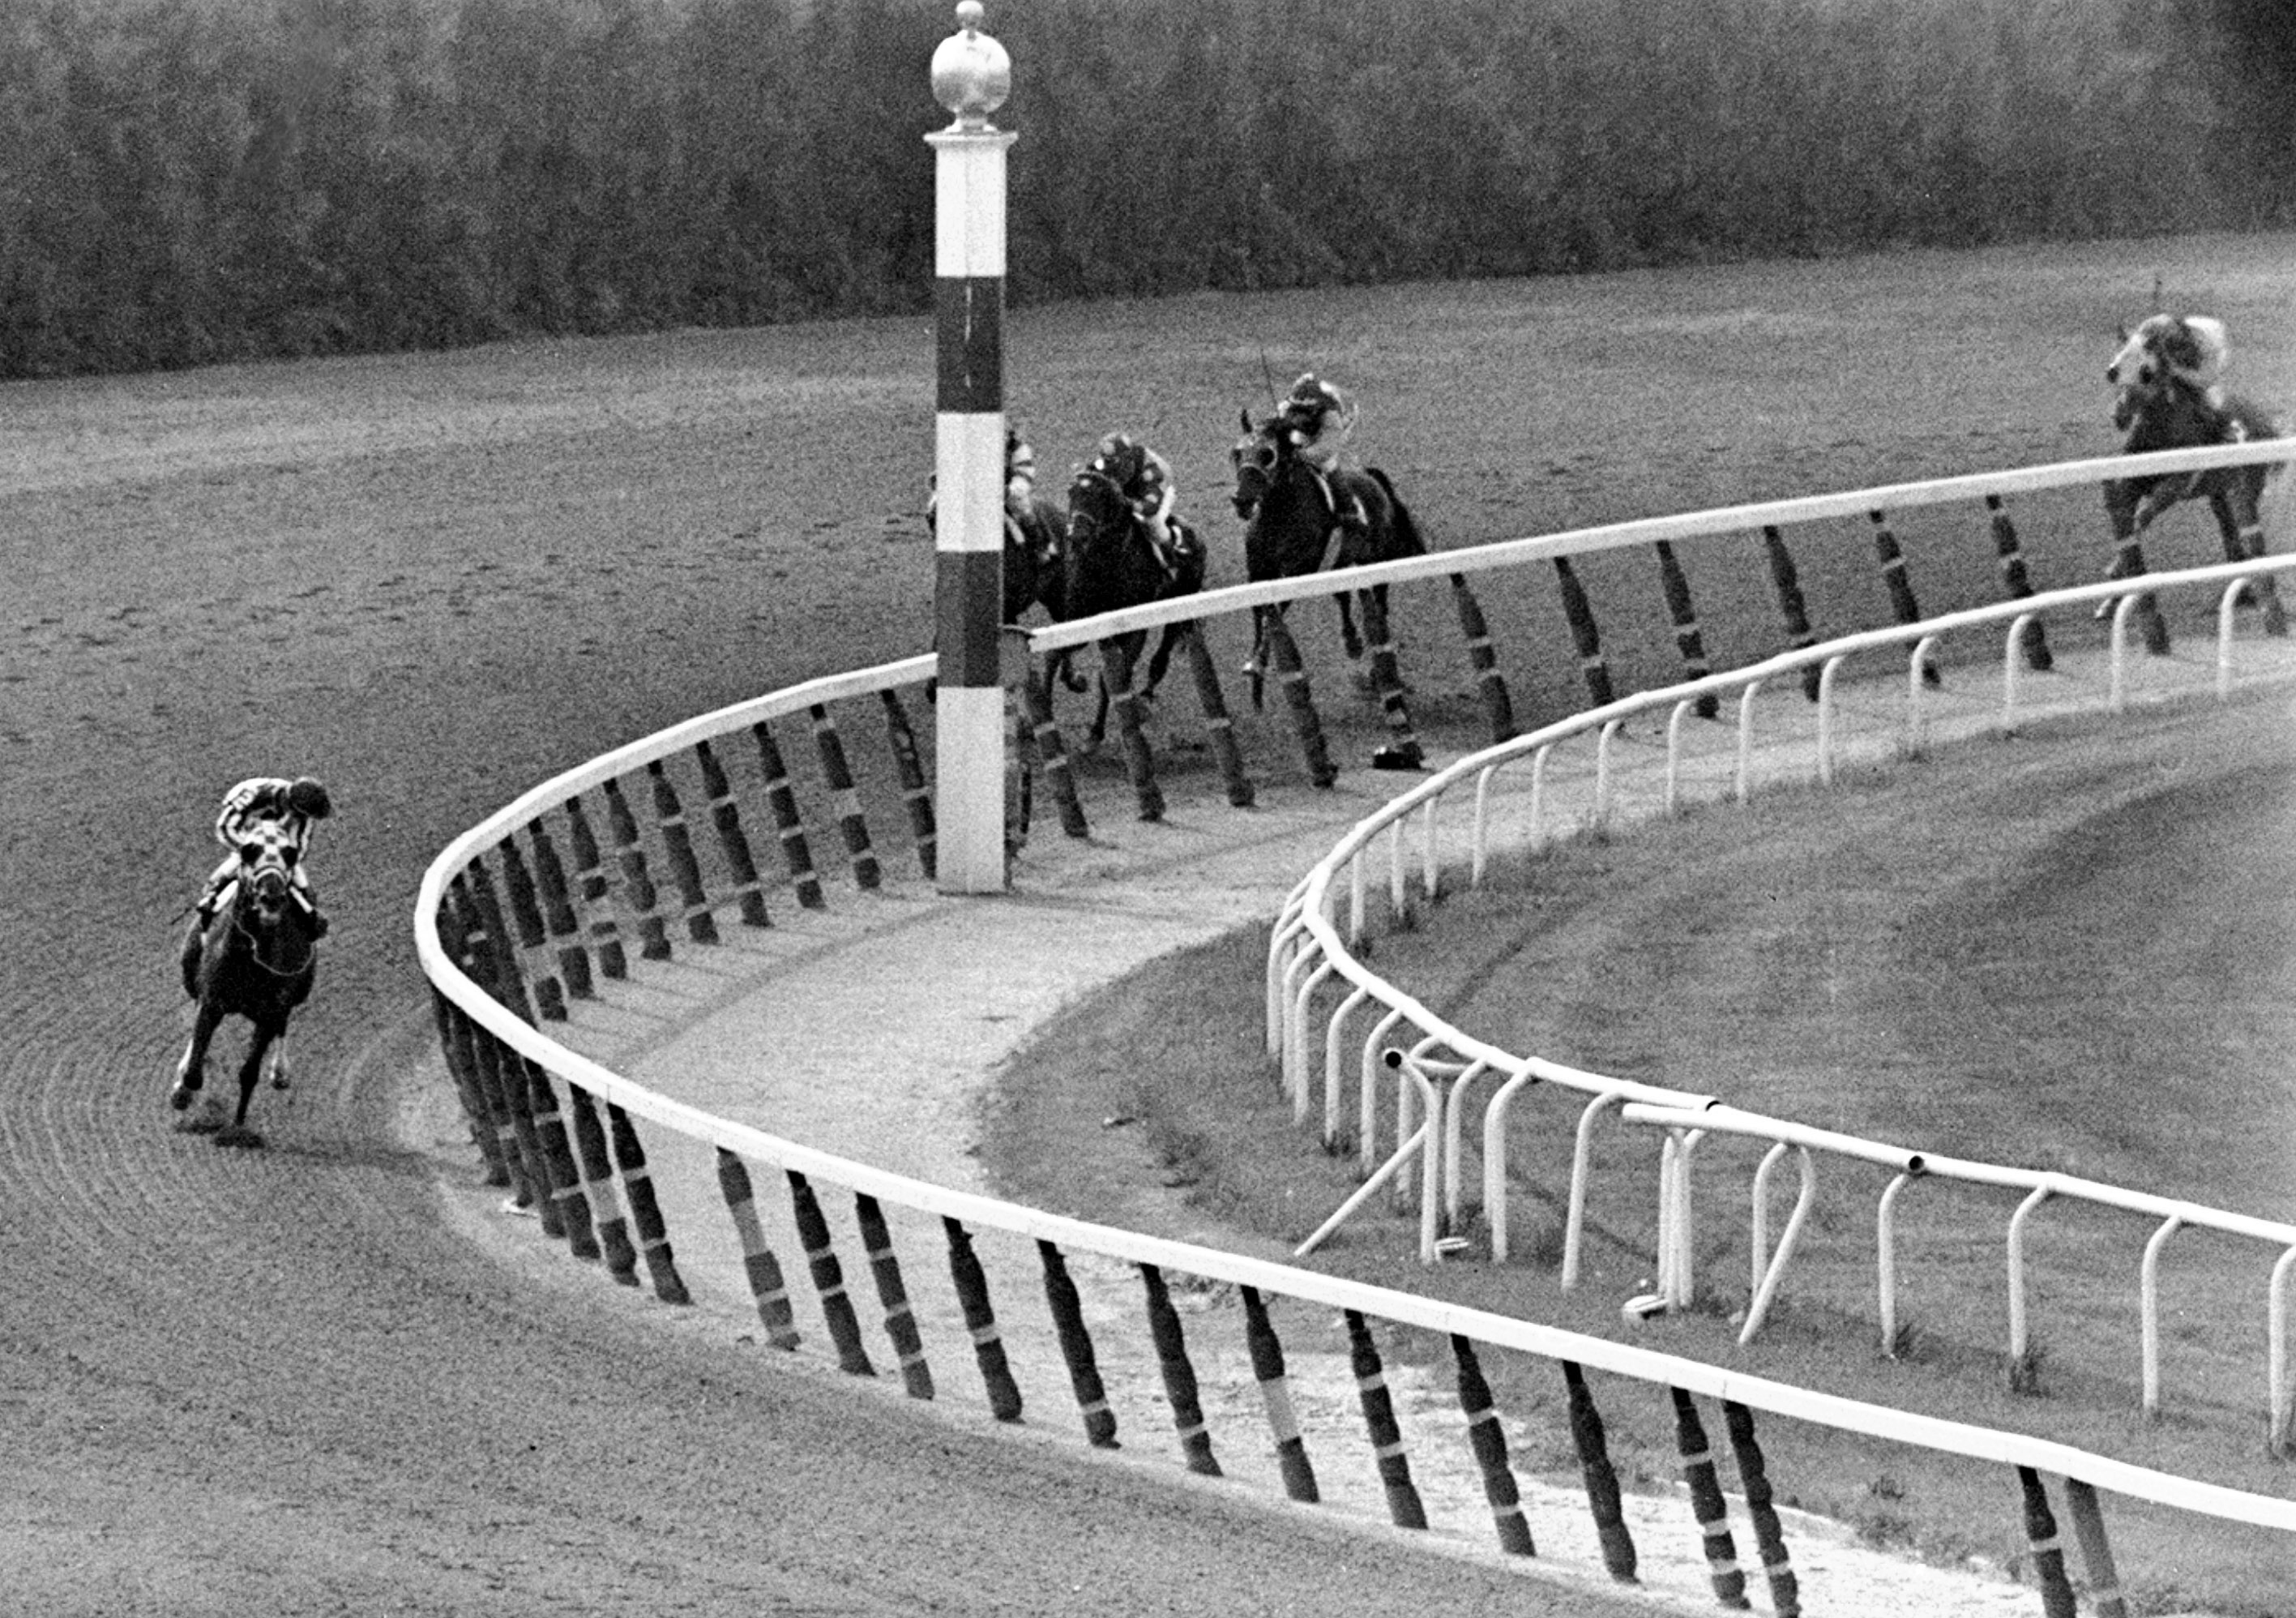 FILE - In this June 9, 1973, file photo, jockey Ron Turcotte, left, aboard Secretariat, turns for a look at the field behind, as they make the final turn on their way to winning the 1973 Triple Crown in the Belmont Stakes horse race at Belmont Park in Elm